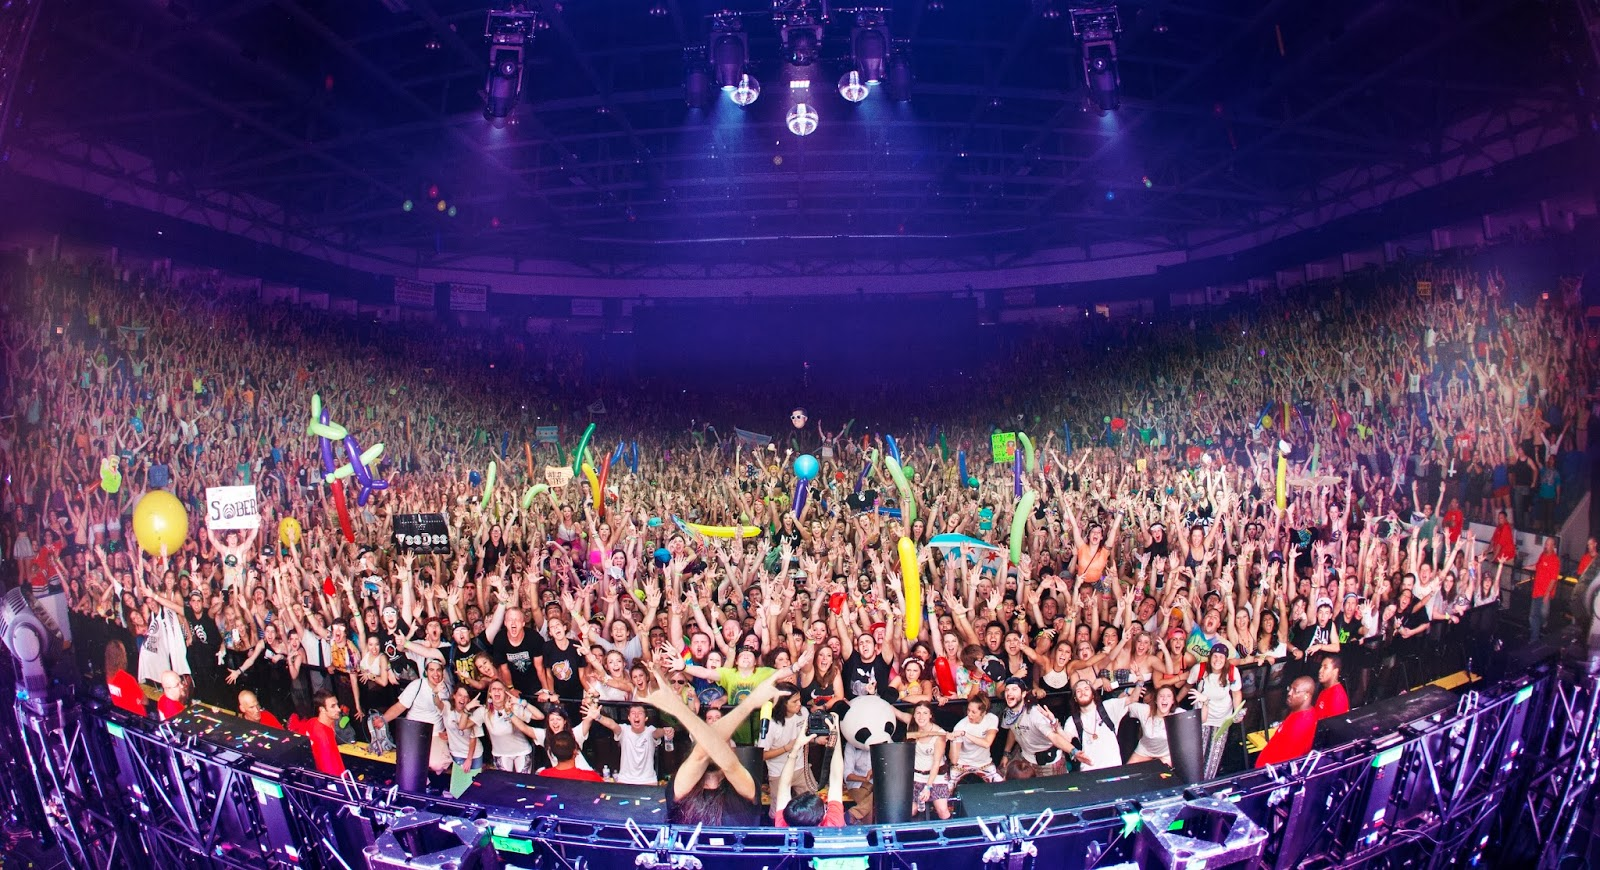 Bassnectar & All EDM Banned from City Owned Venues in Bloomington ...